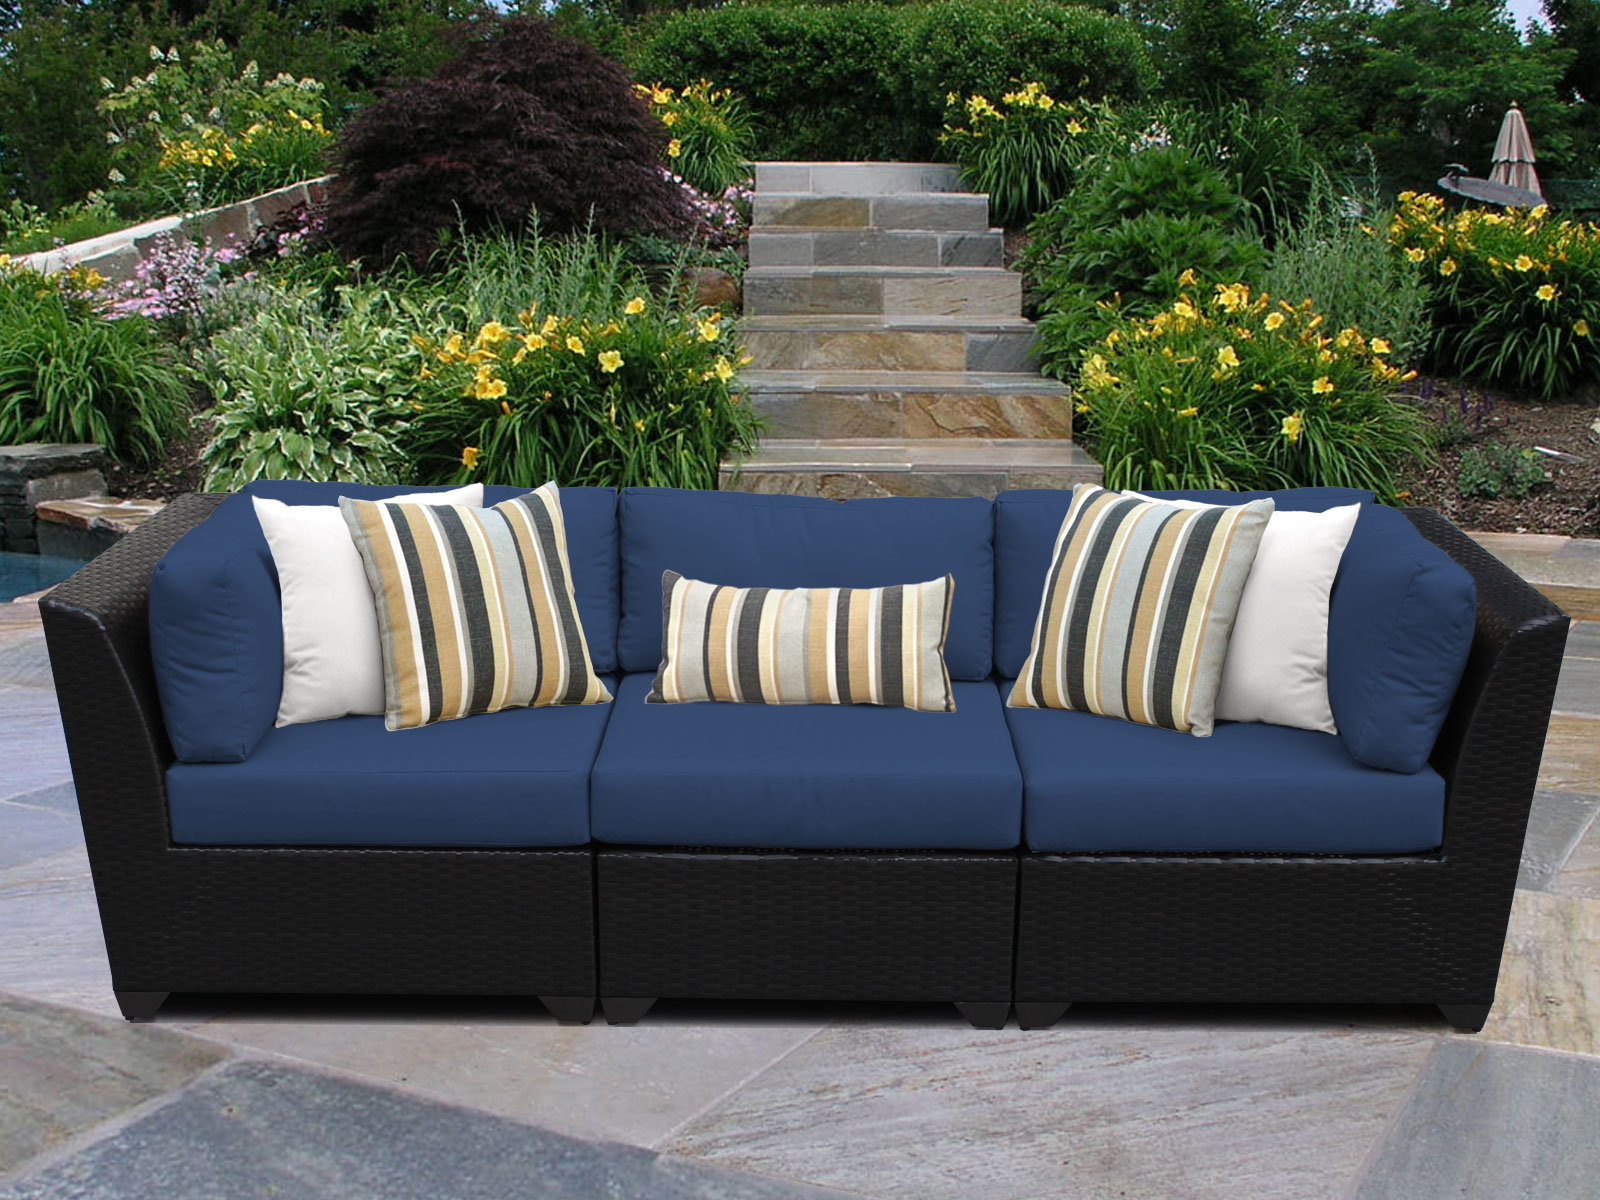 Well Liked Camak Patio Sofa With Cushions Inside Camak Patio Loveseats With Cushions (View 4 of 20)